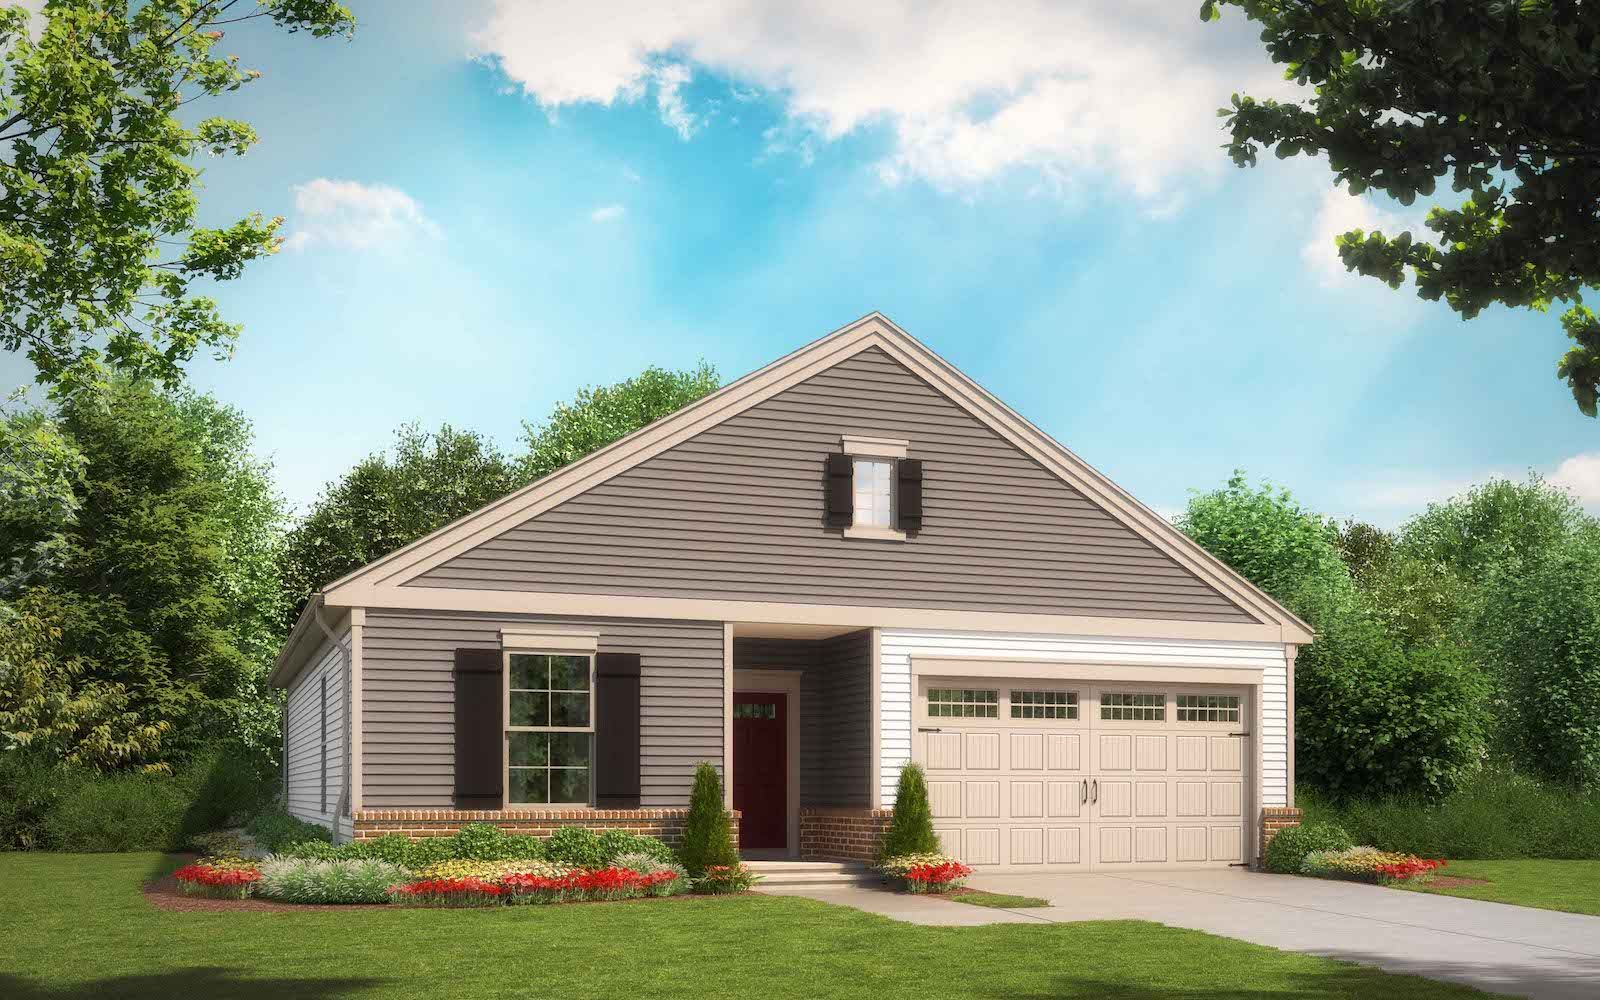 Exterior:Elevation 1 of the Pendleton a home design offered at Snowden Bridge in Stephenson VA by Brookfield Residential